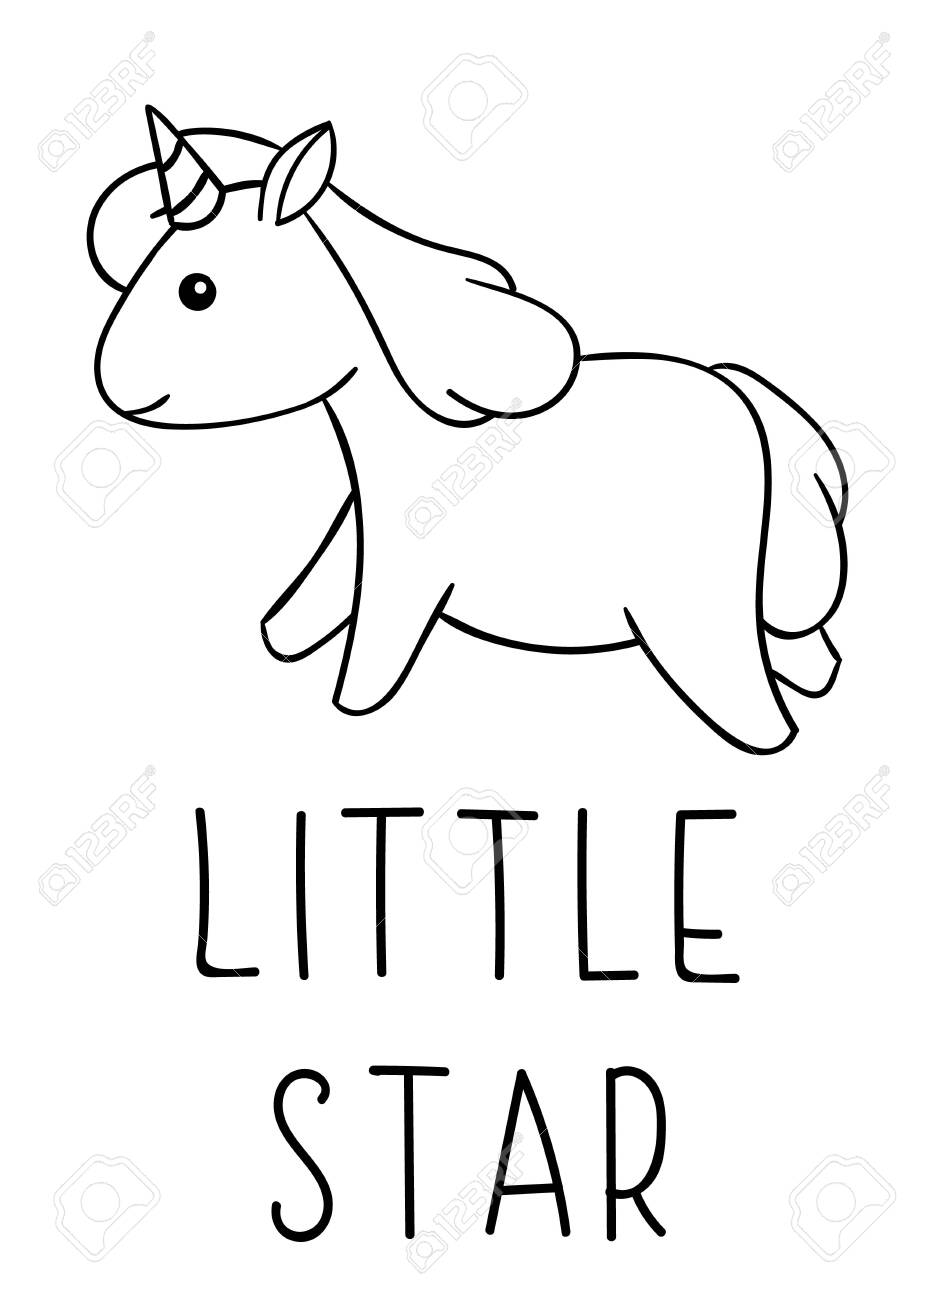 Coloring Pages Black And White Cute Kawaii Hand Drawn Unicorn Royalty Free Cliparts Vectors And Stock Illustration Image 144033599